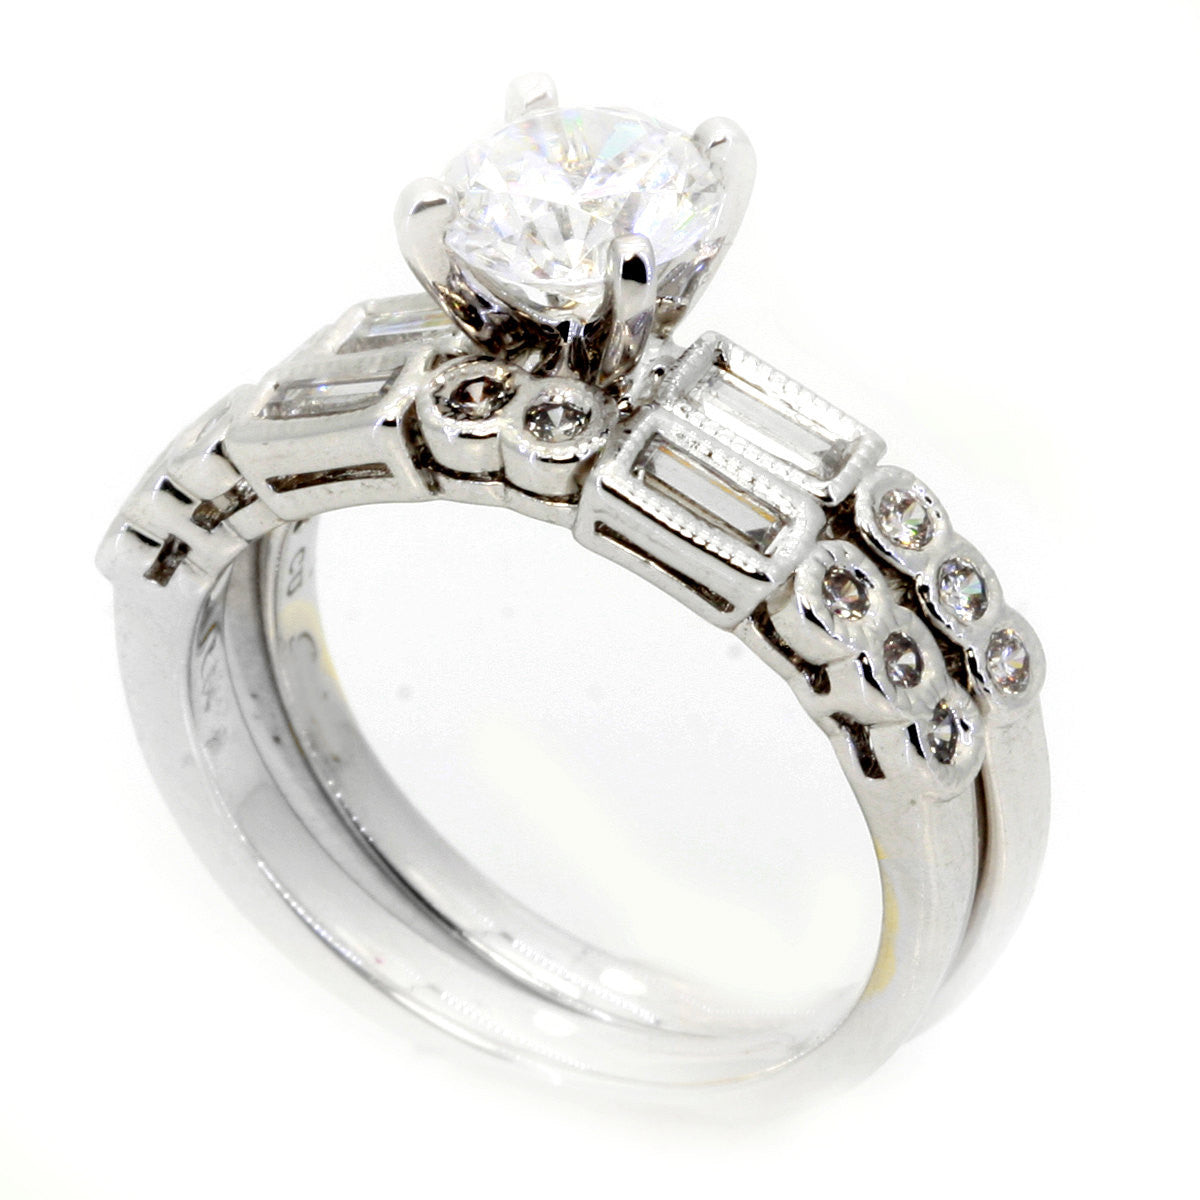 Semi Mount Engagement Ring Wedding Set, Unique Art Deco Style For 1 Carat Center Stone, Has 1 Carat Diamonds - 73080